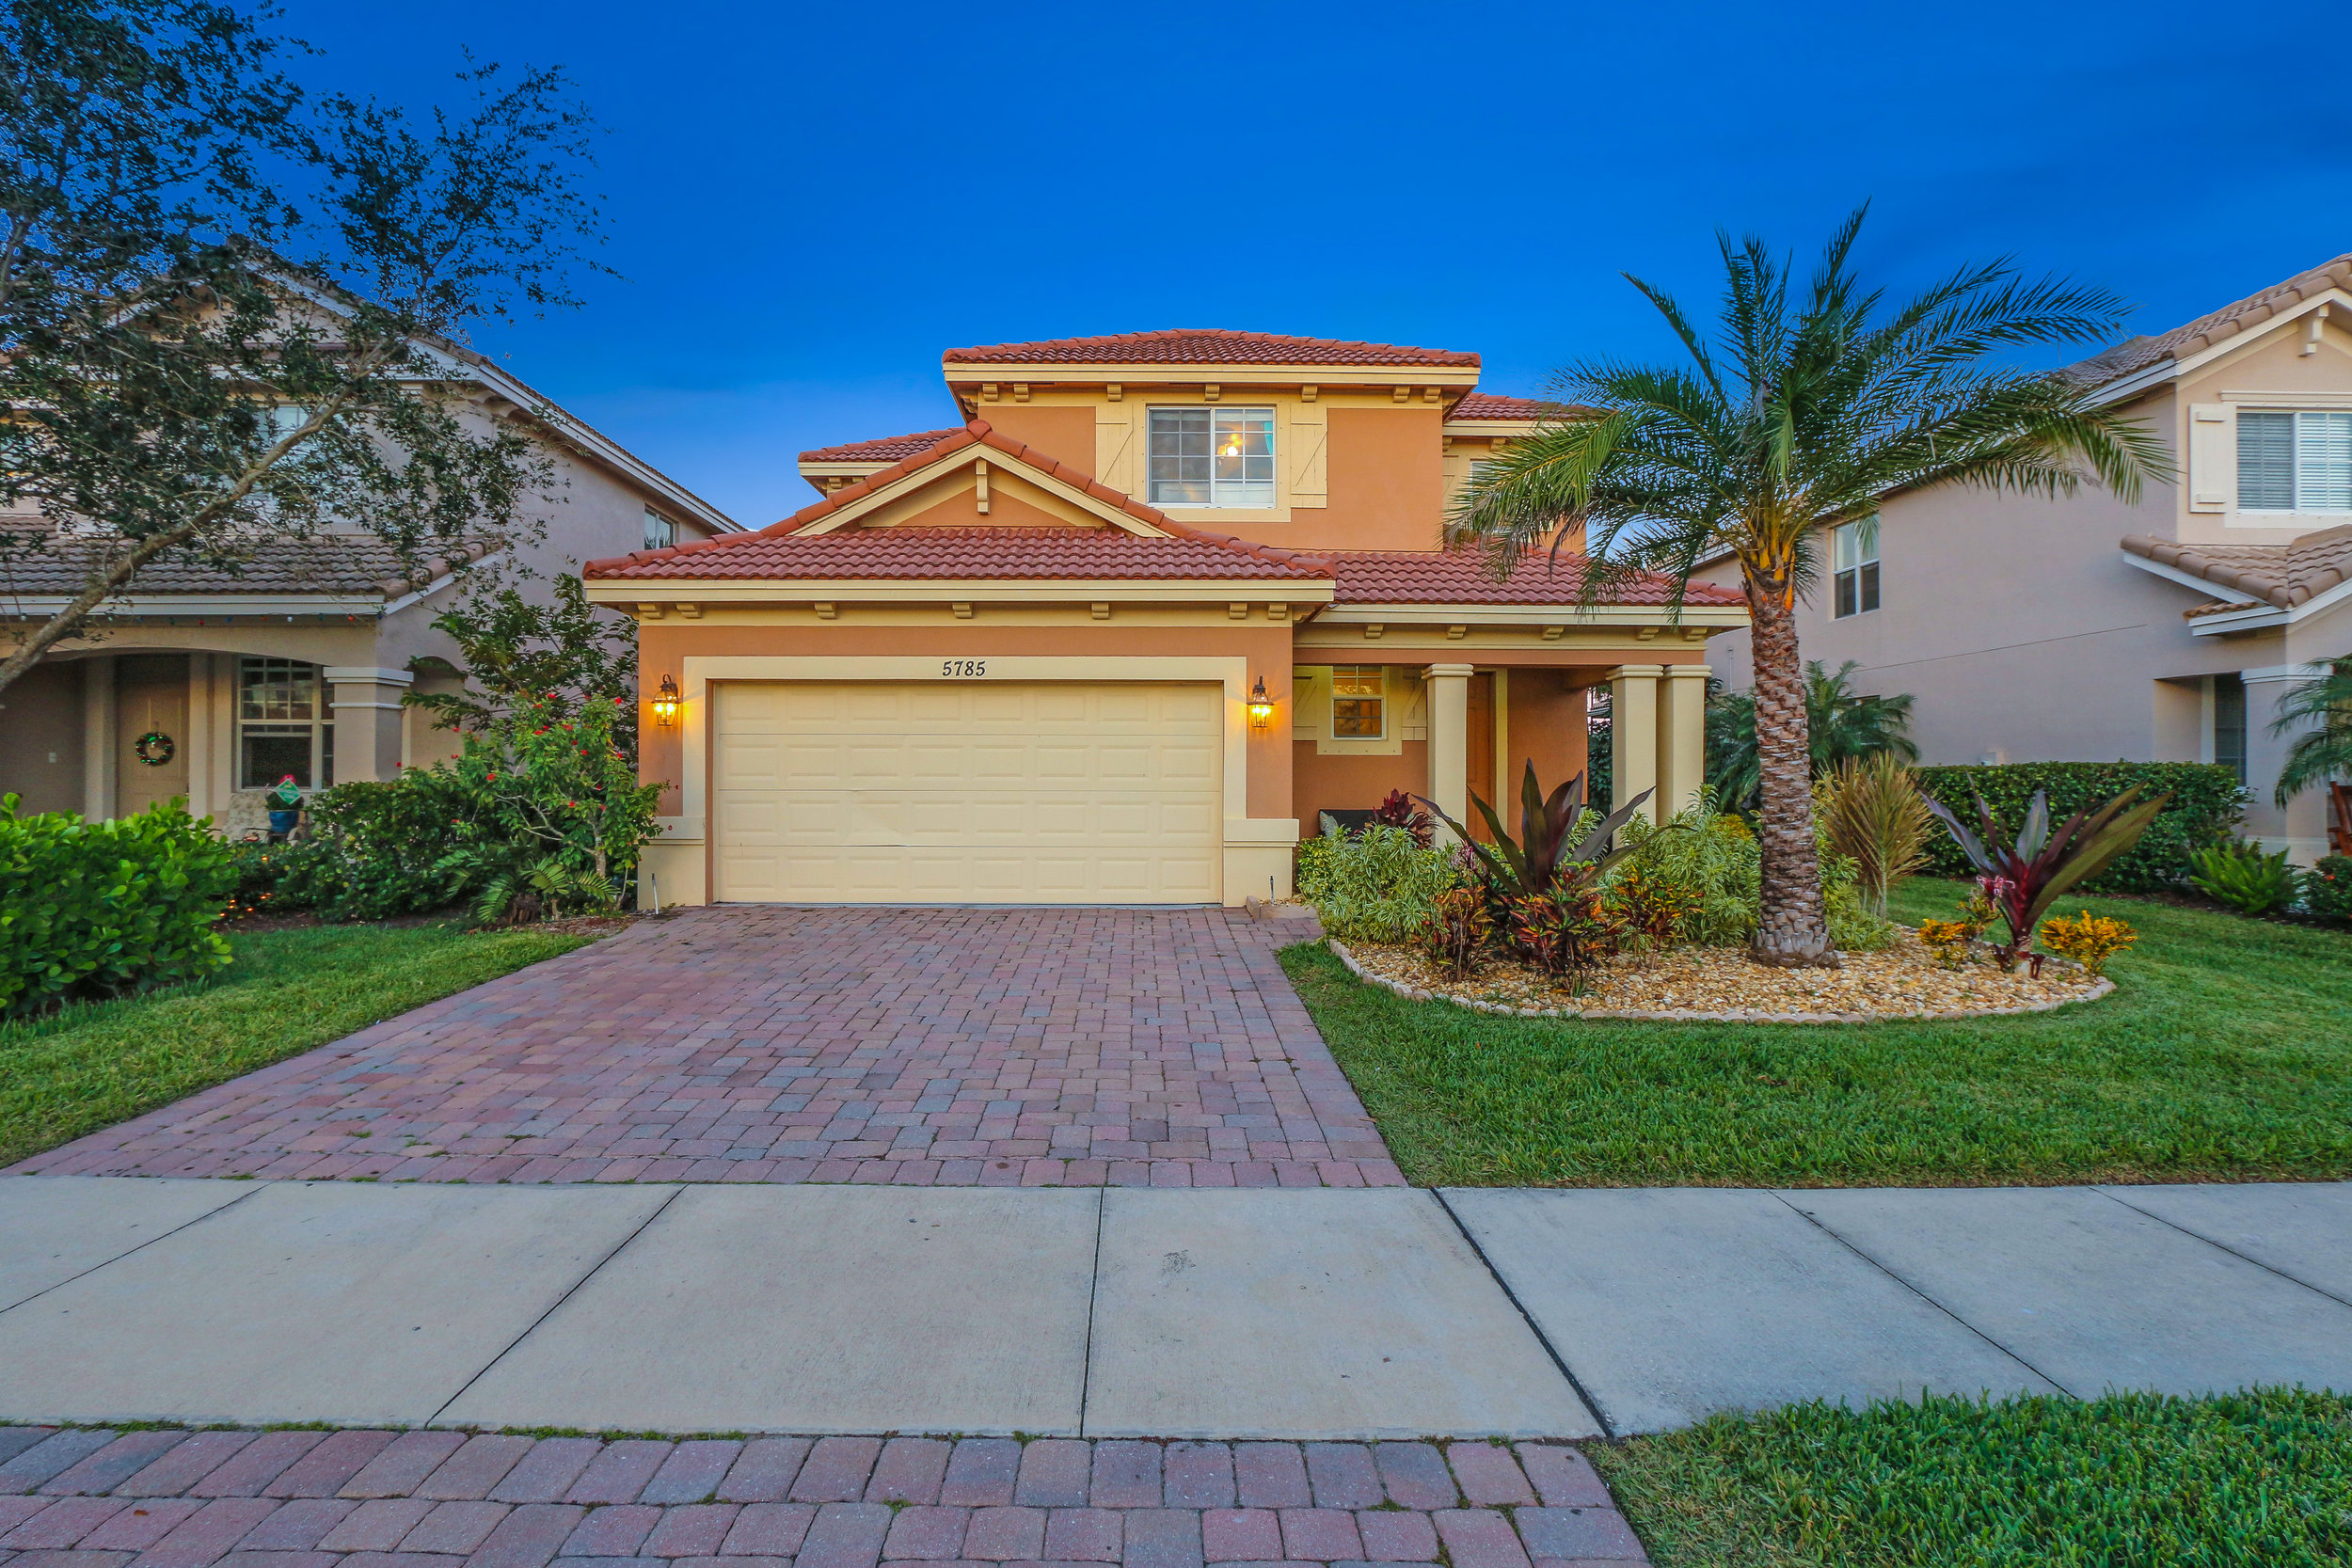 Homes For Sale in Palm Beach Gardens - See all single family homes for sale in Palm Beach Gardens, Florida.